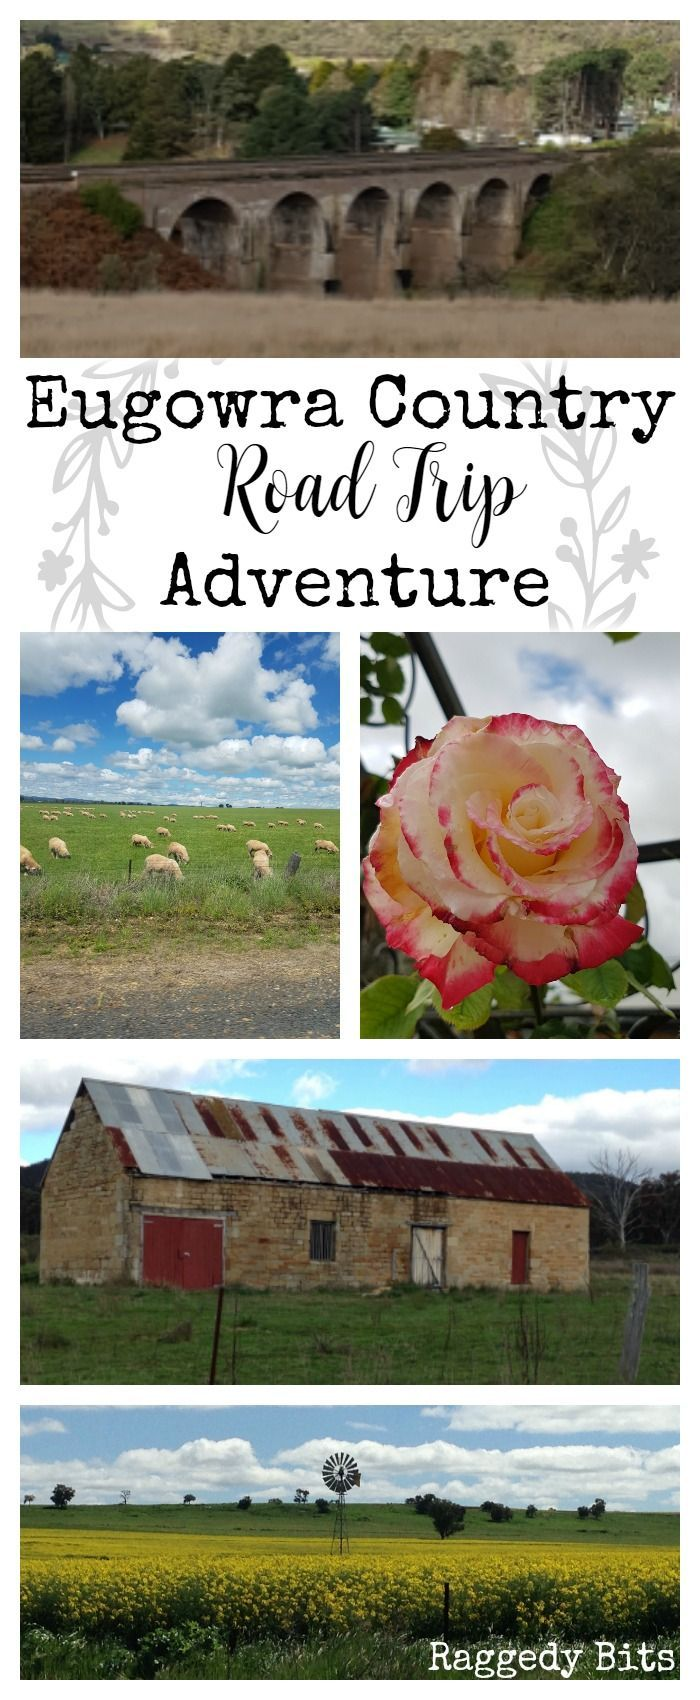 Let me take you on a journey to one of the most beautiful parts of the Australian countryside. Join me for our Eugowra Country Road Trip Adventure.